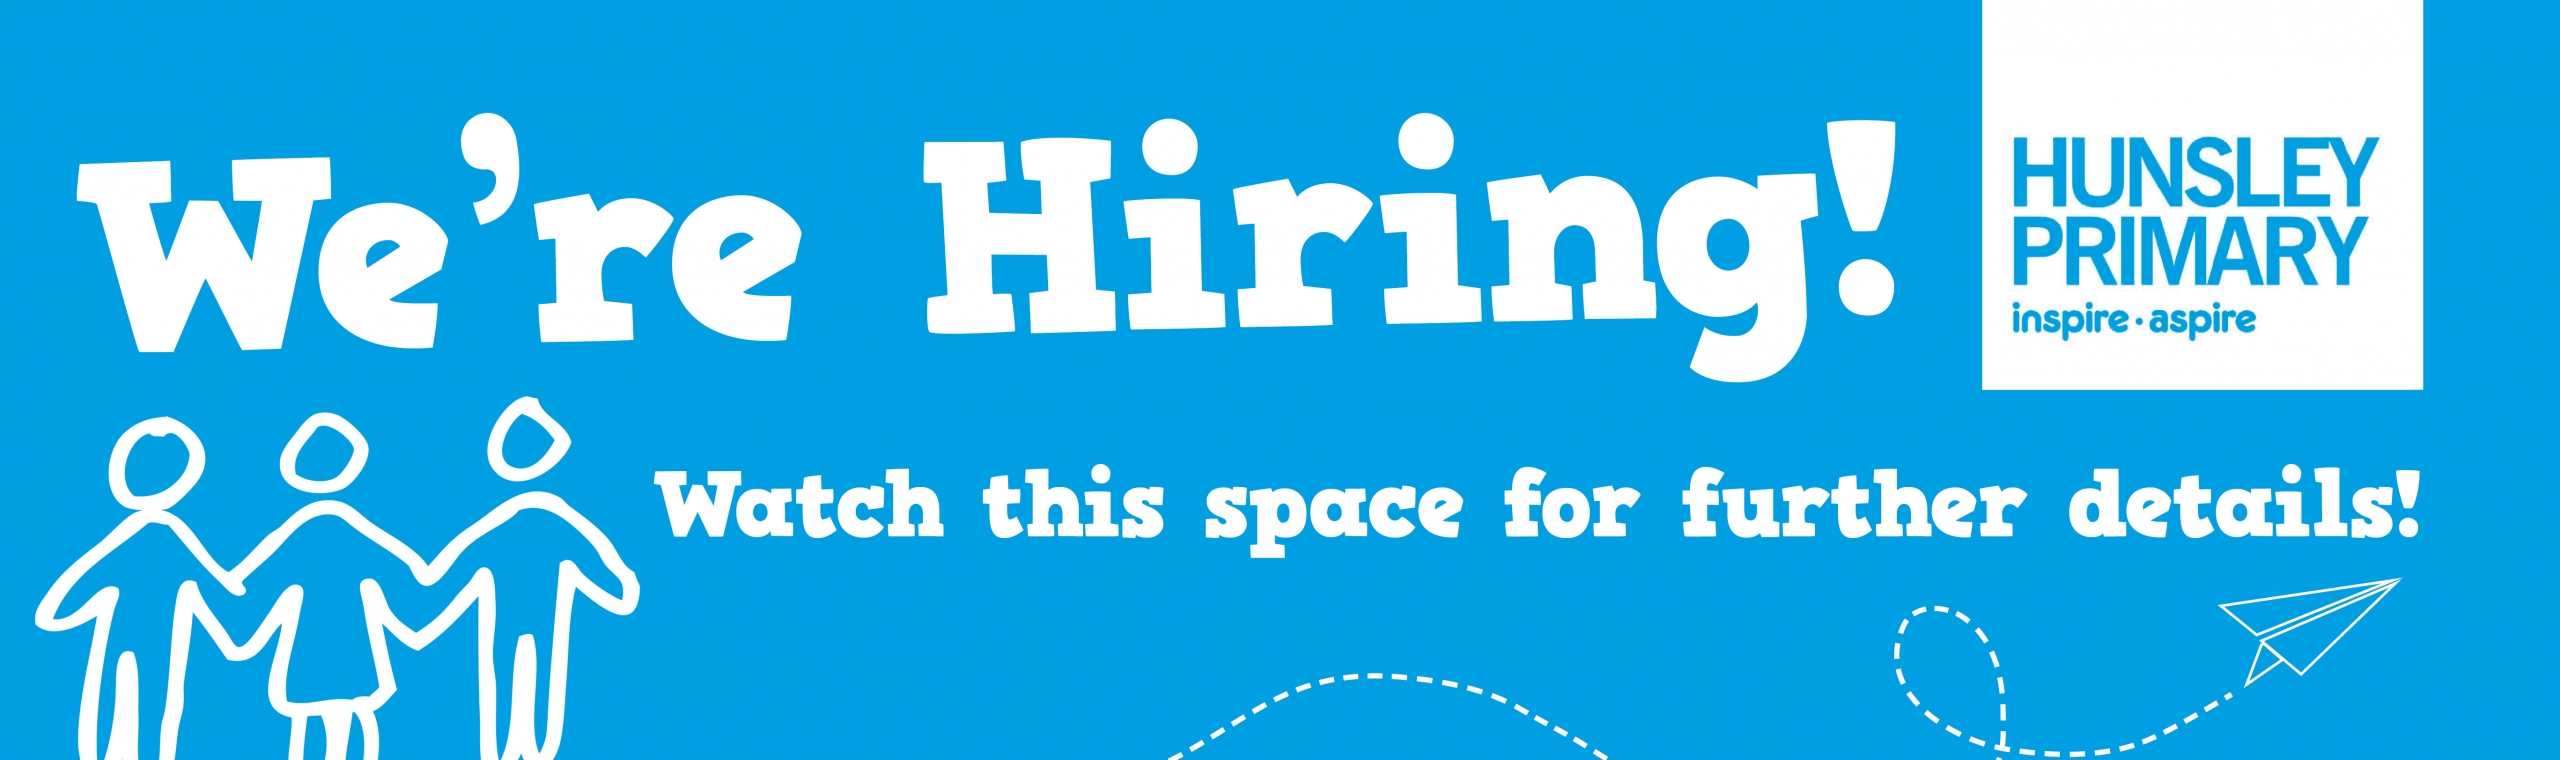 Hunsley_Primary_Banner – We're Hiring